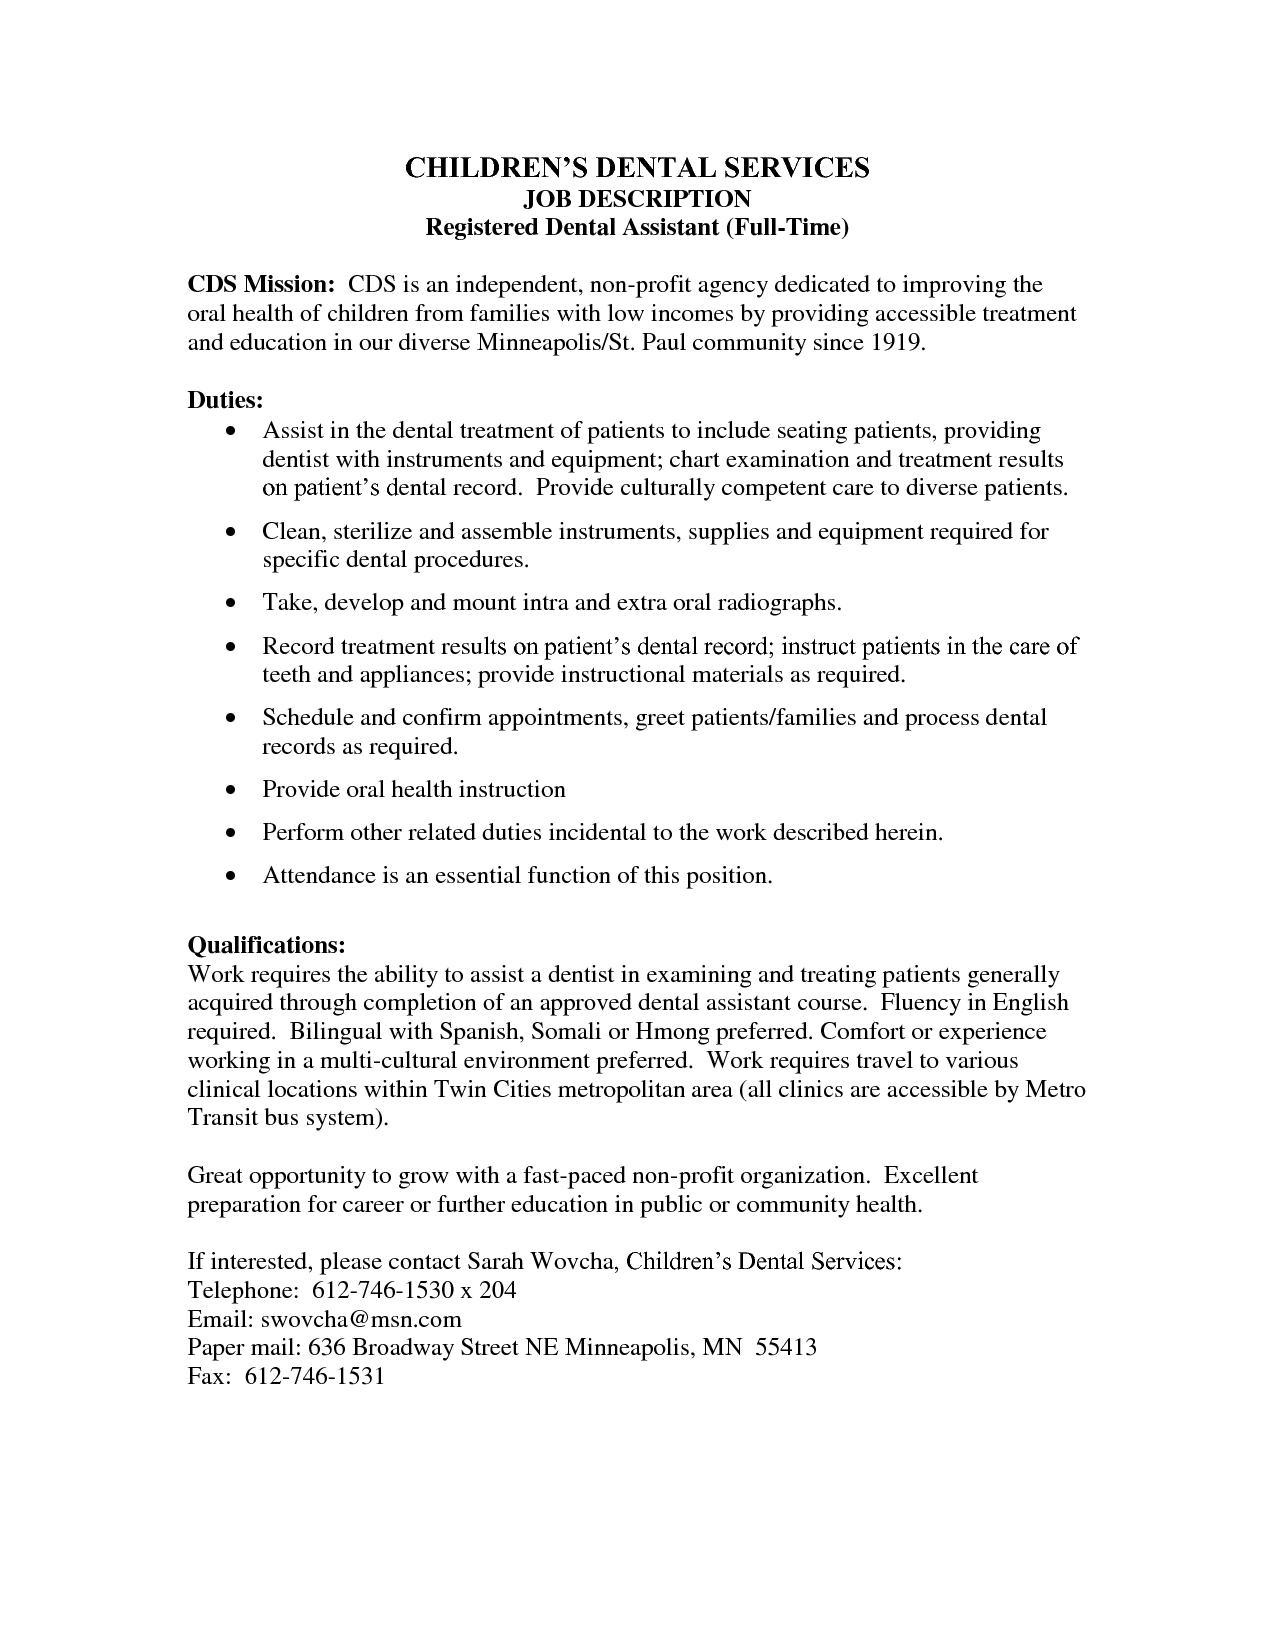 Dental Assistant Skills And Qualifications Registered